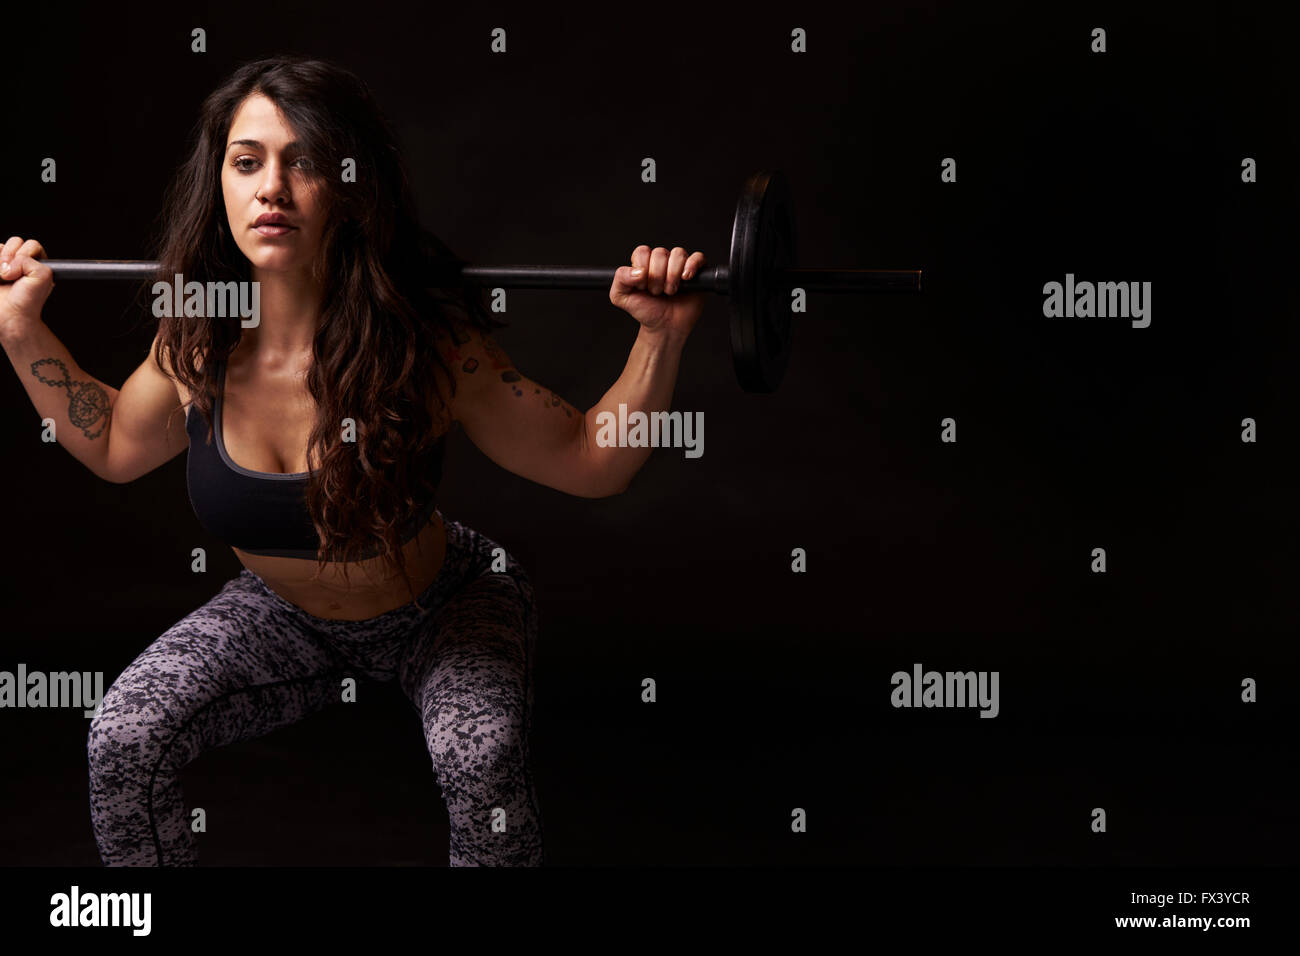 Muscular dark haired woman in half squat with barbell - Stock Image